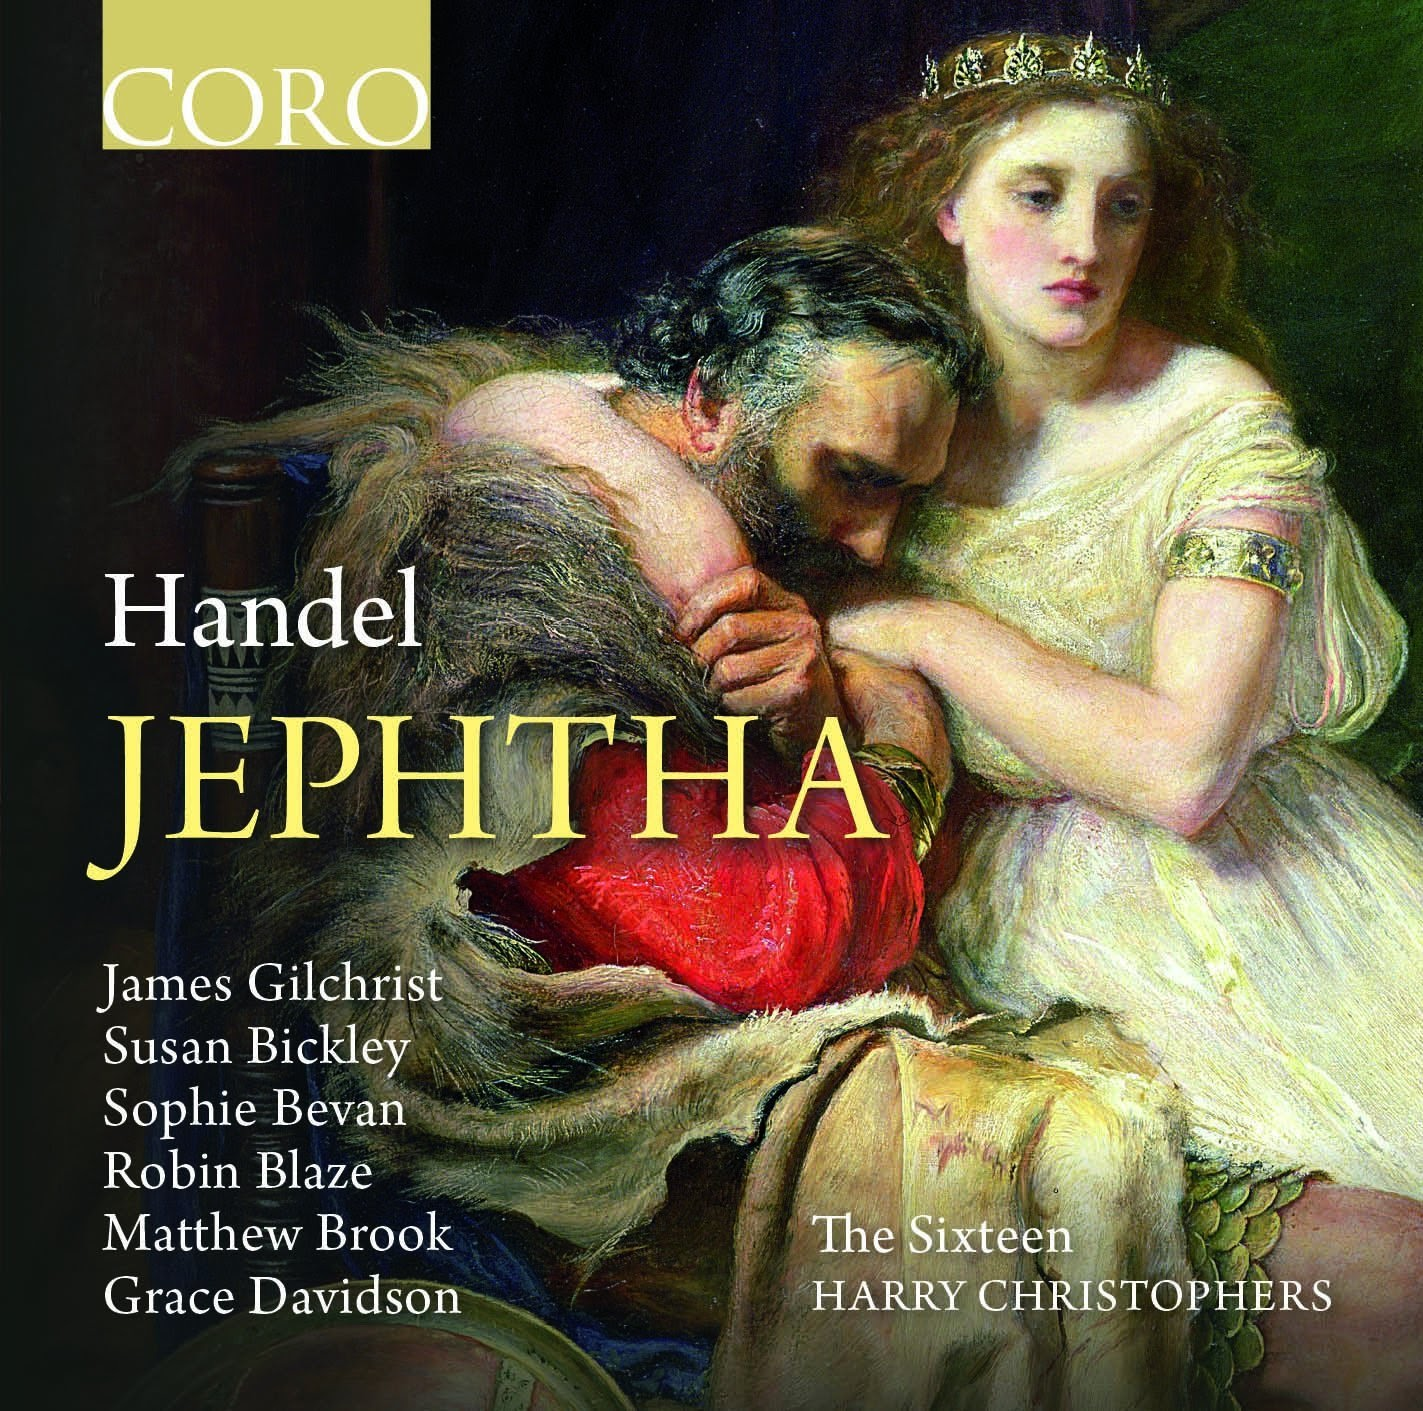 Handel Jephtha - Coro - The Sixteen